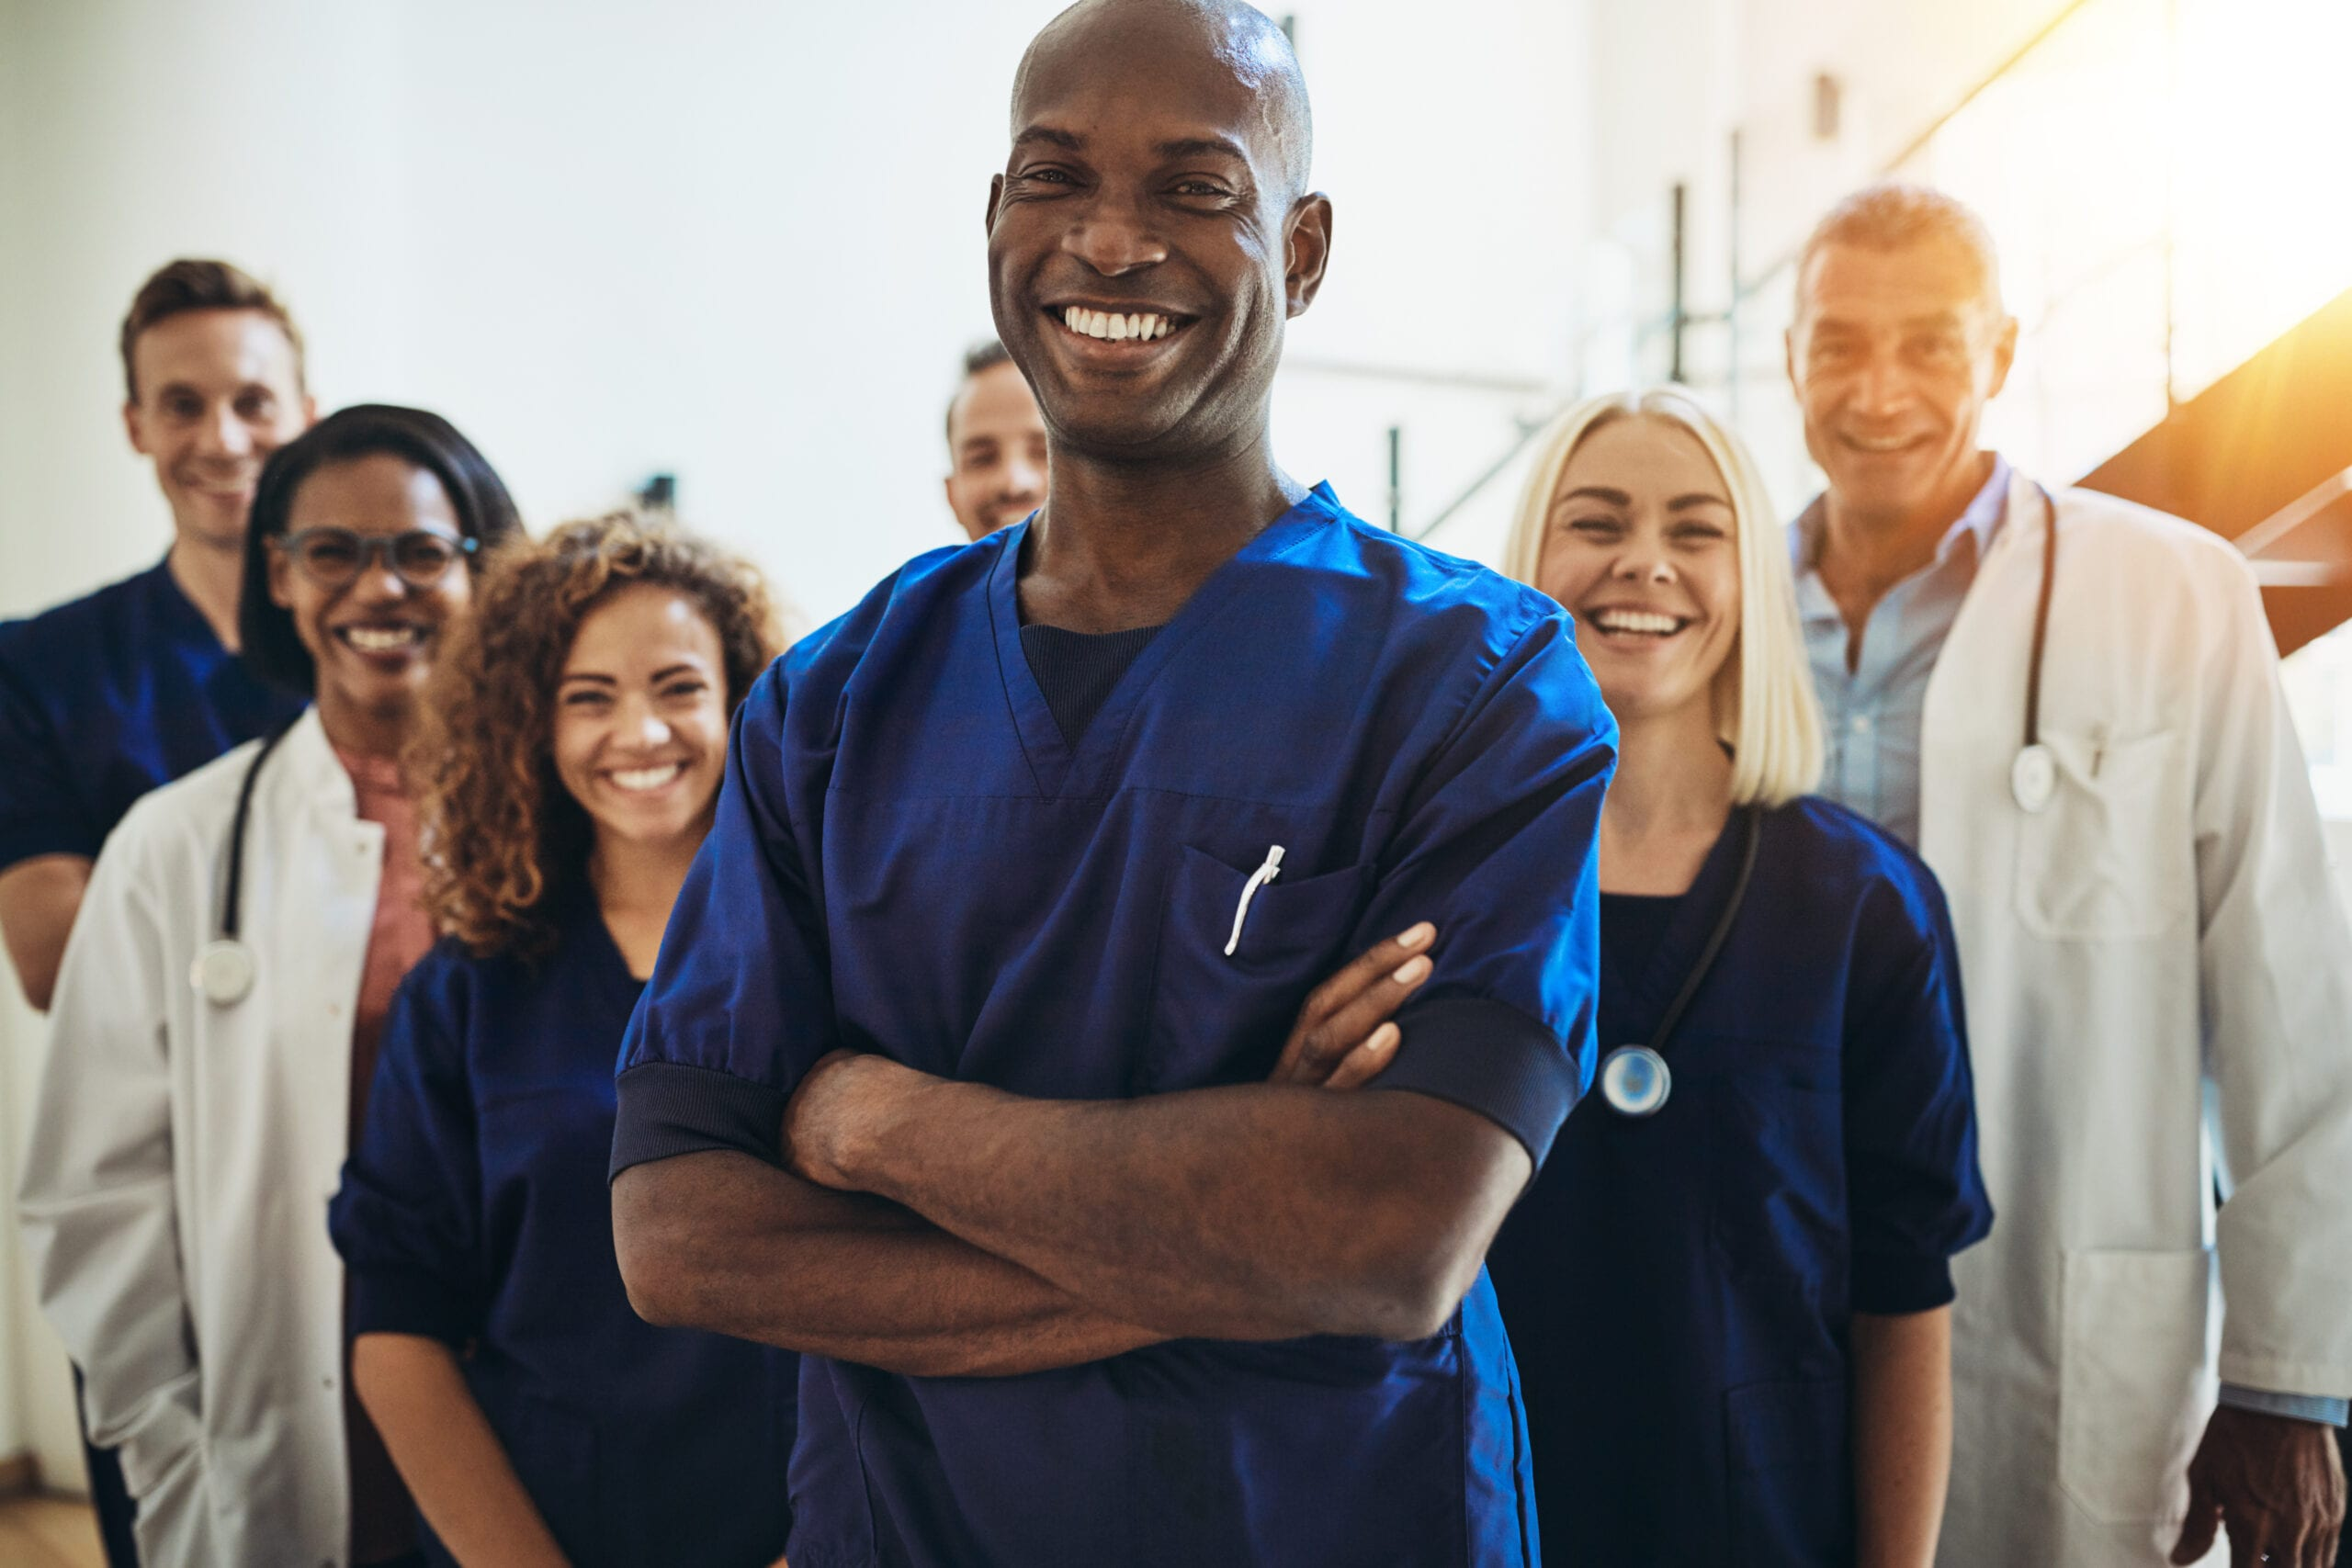 Nurse standing in a hospital with crew